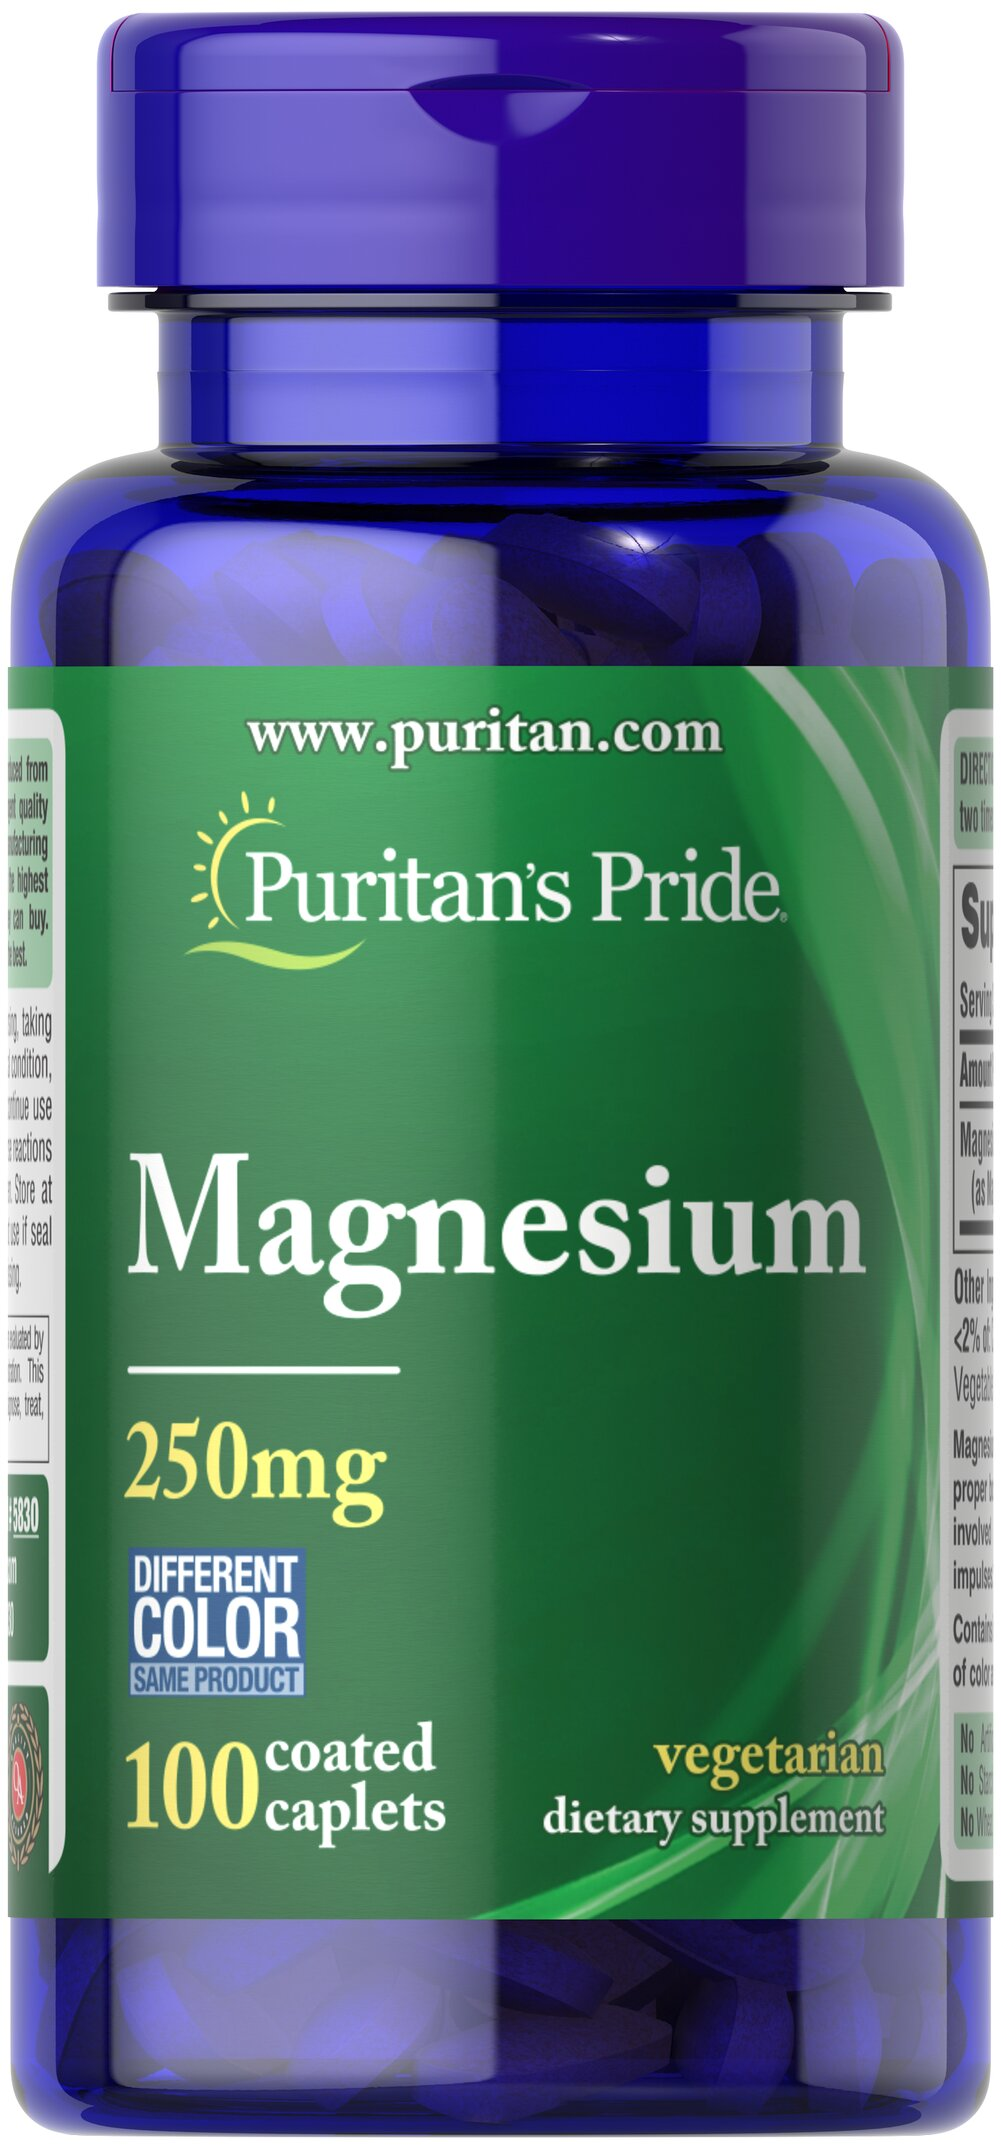 Magnesium 250 mg <p>Magnesium offers another option, besides Calcium, for supporting bone health.** Magnesium plays an essential role in maintaining bone mineralization, and is also involved in muscle contractions and nerve impulses.** Adults can take one caplet daily with a meal.</p> 100 Caplets 250 mg $6.99